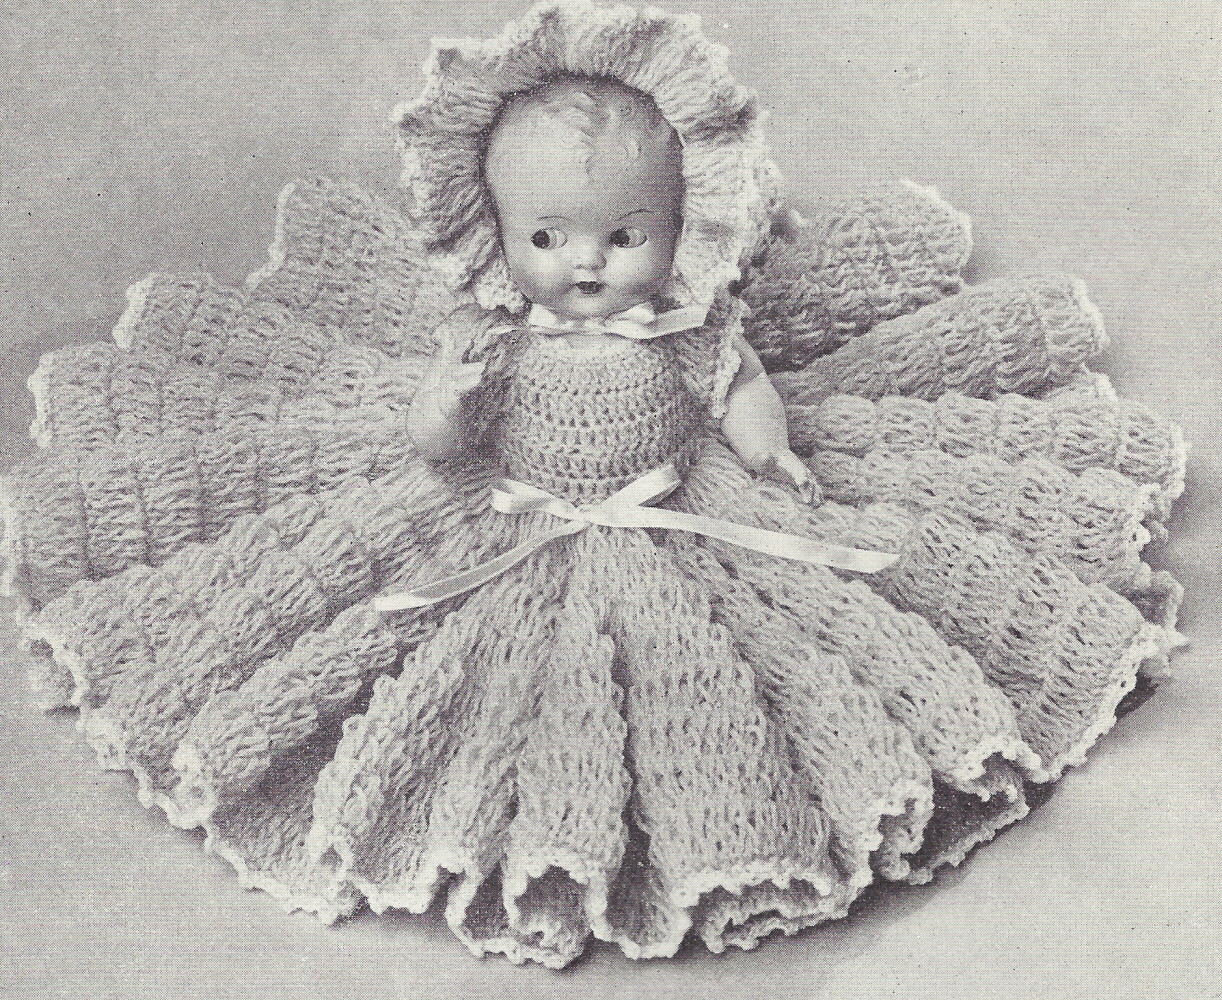 Crochet Baby Doll Pattern Inspirational Vintage Crochet Pattern to Make 11 Inch Bed Doll Baby Of Amazing 40 Pics Crochet Baby Doll Pattern